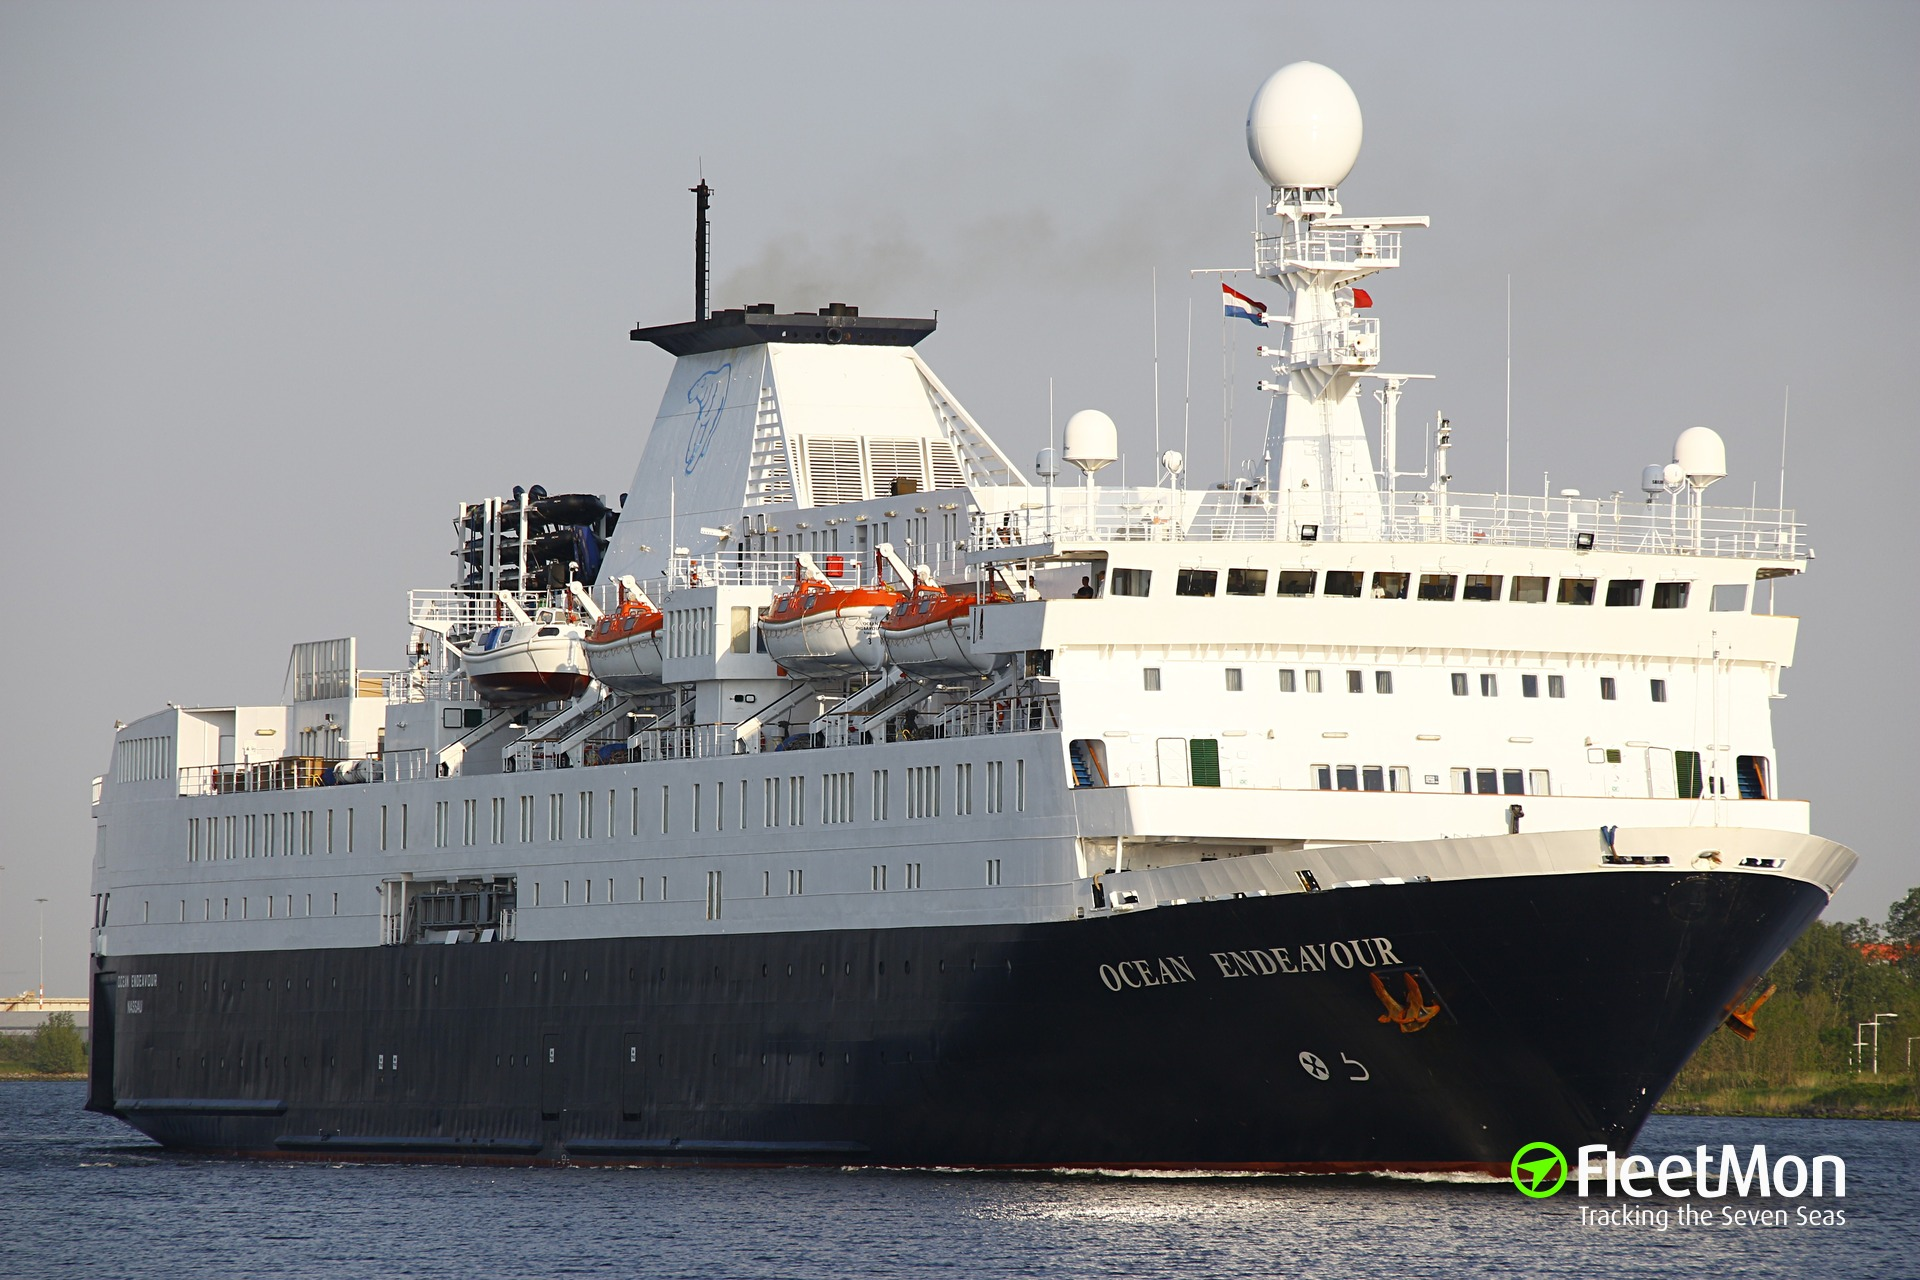 Quark Expeditions Antarctica Cruise Ship OCEAN ENDEAVOUR sustains damage